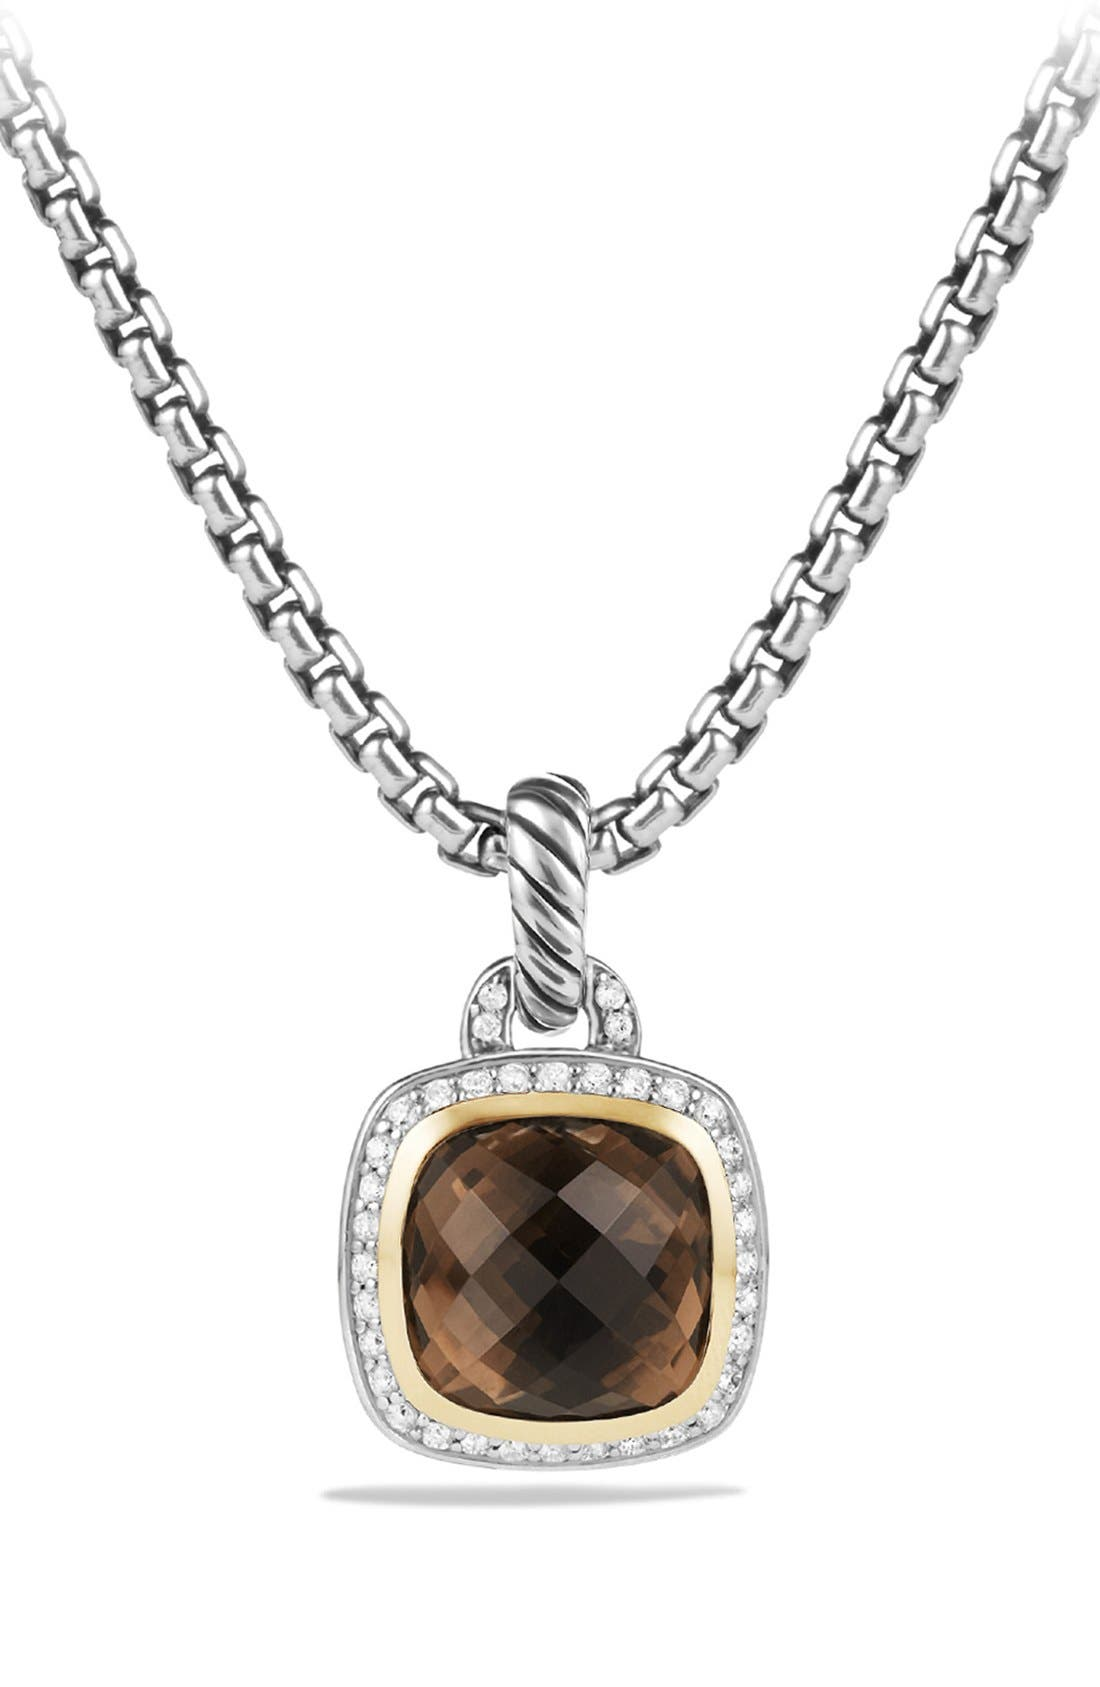 'Albion' Pendant with Diamonds and 18K Gold,                             Main thumbnail 1, color,                             200